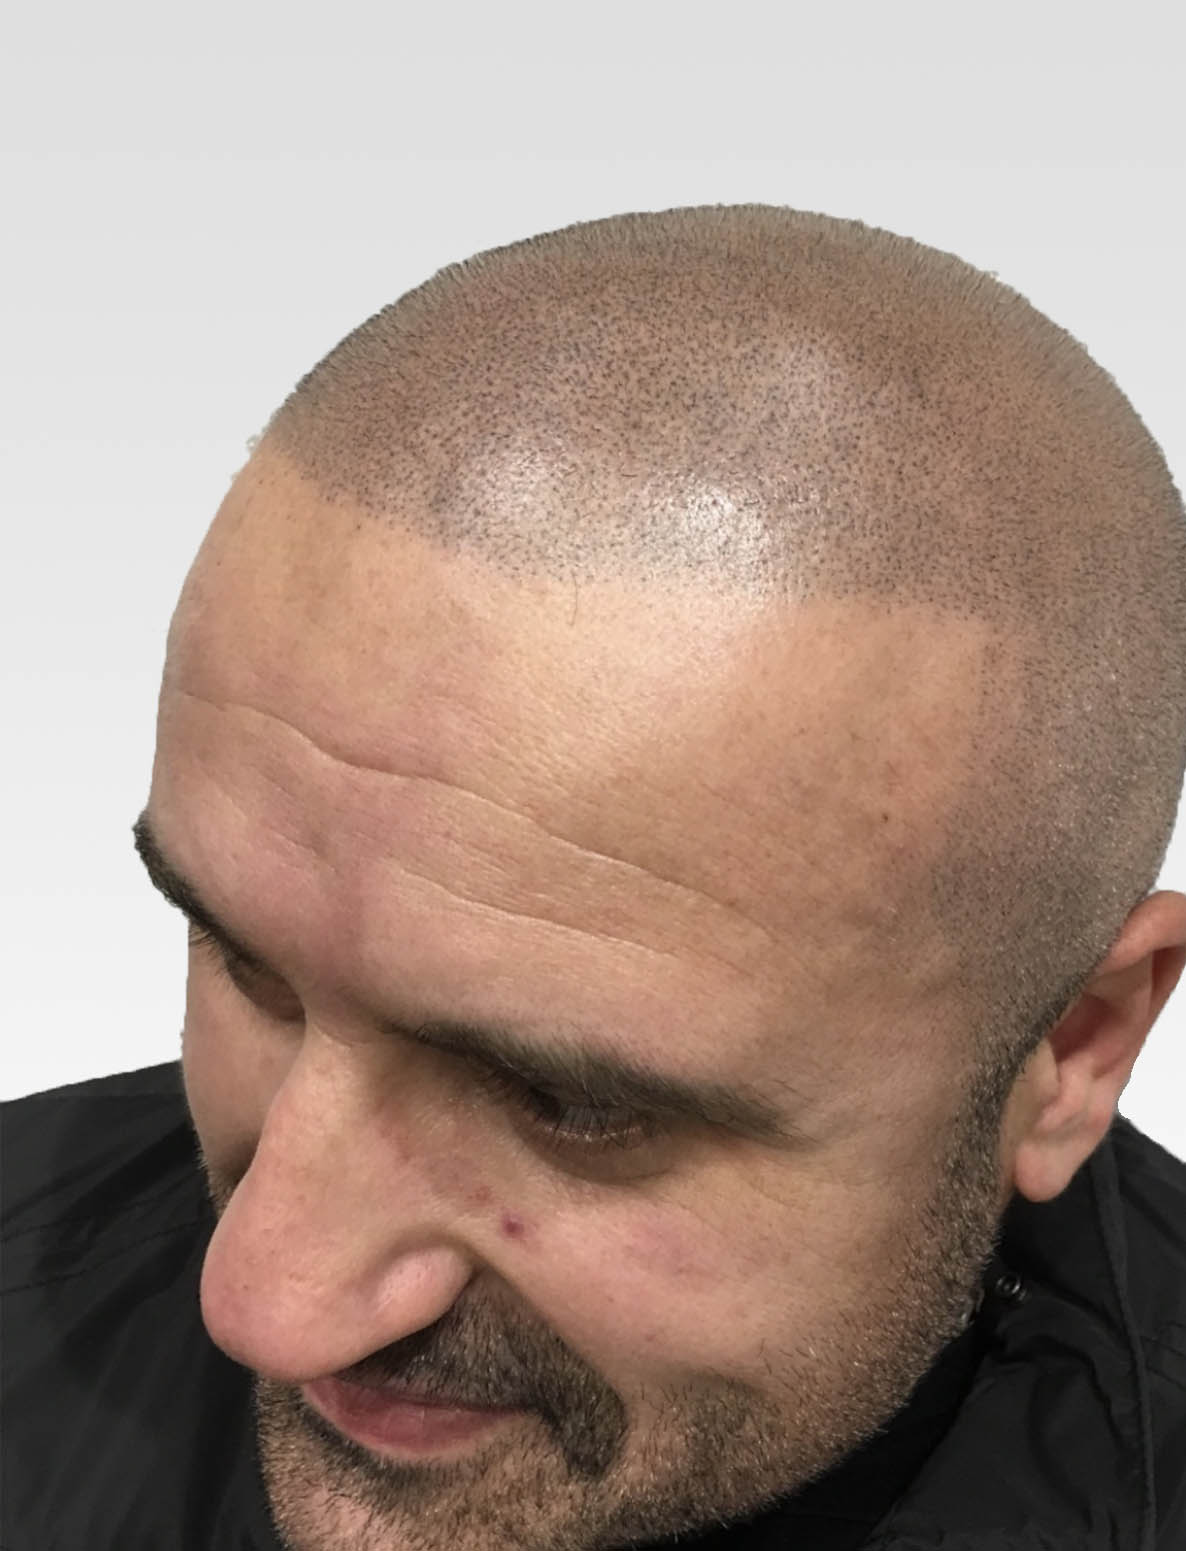 Defined SMP hairline